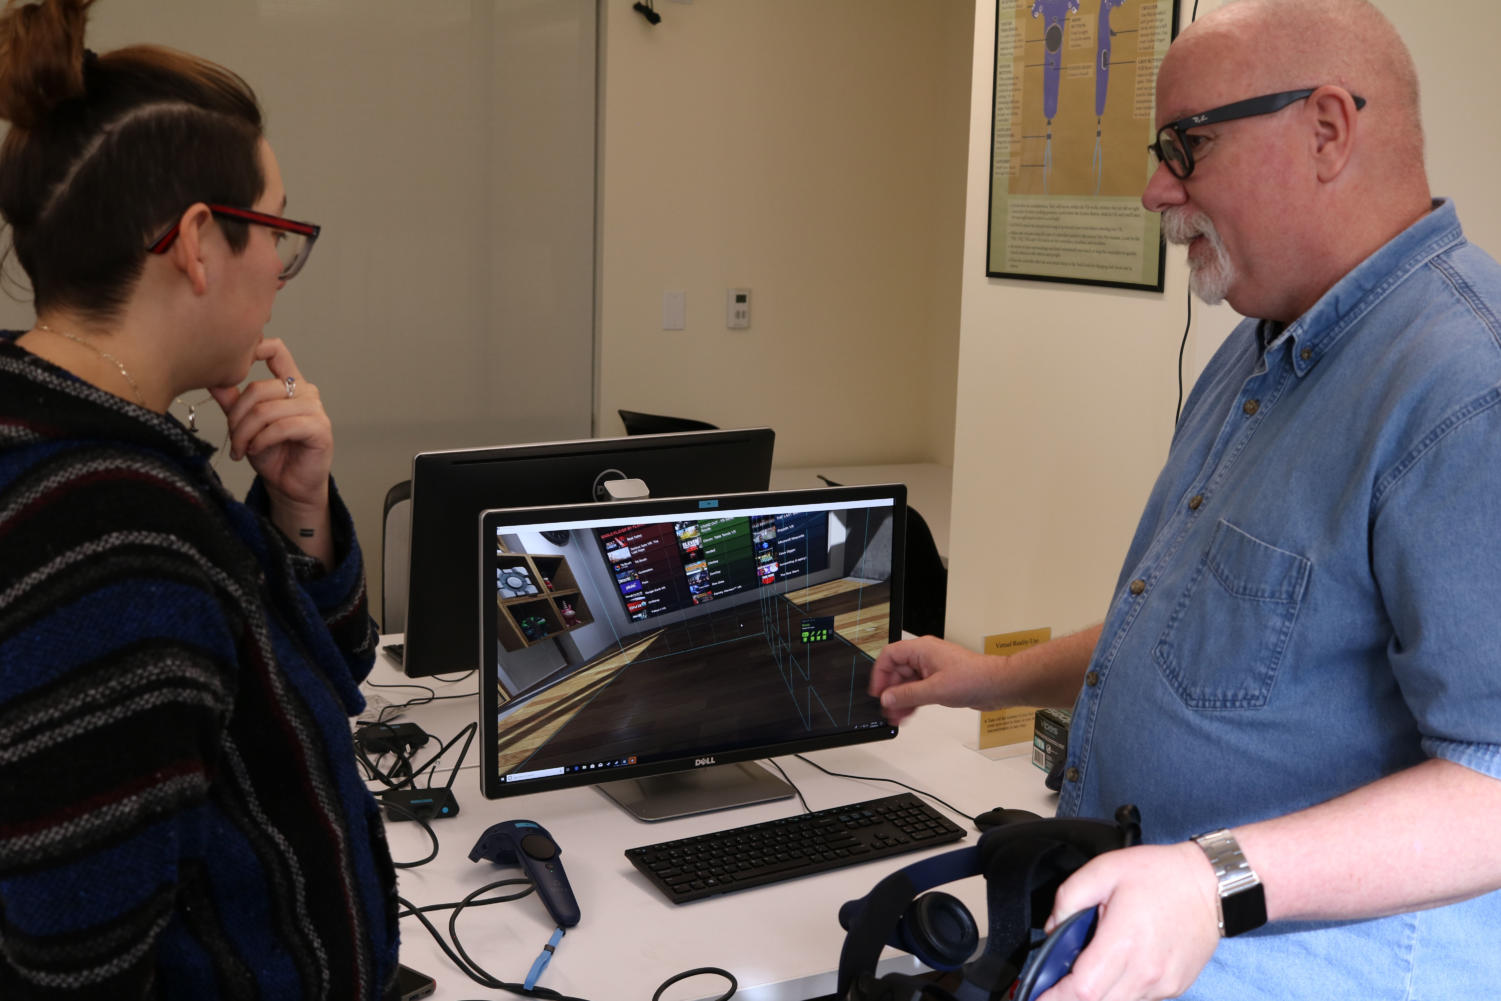 Instructor Robert Grandmaison teaches student Vanessa Mondragon how to use the Virtual Reality gear, available for student use in the new Digital Media Suites on the 2nd floor of Doyle Library.